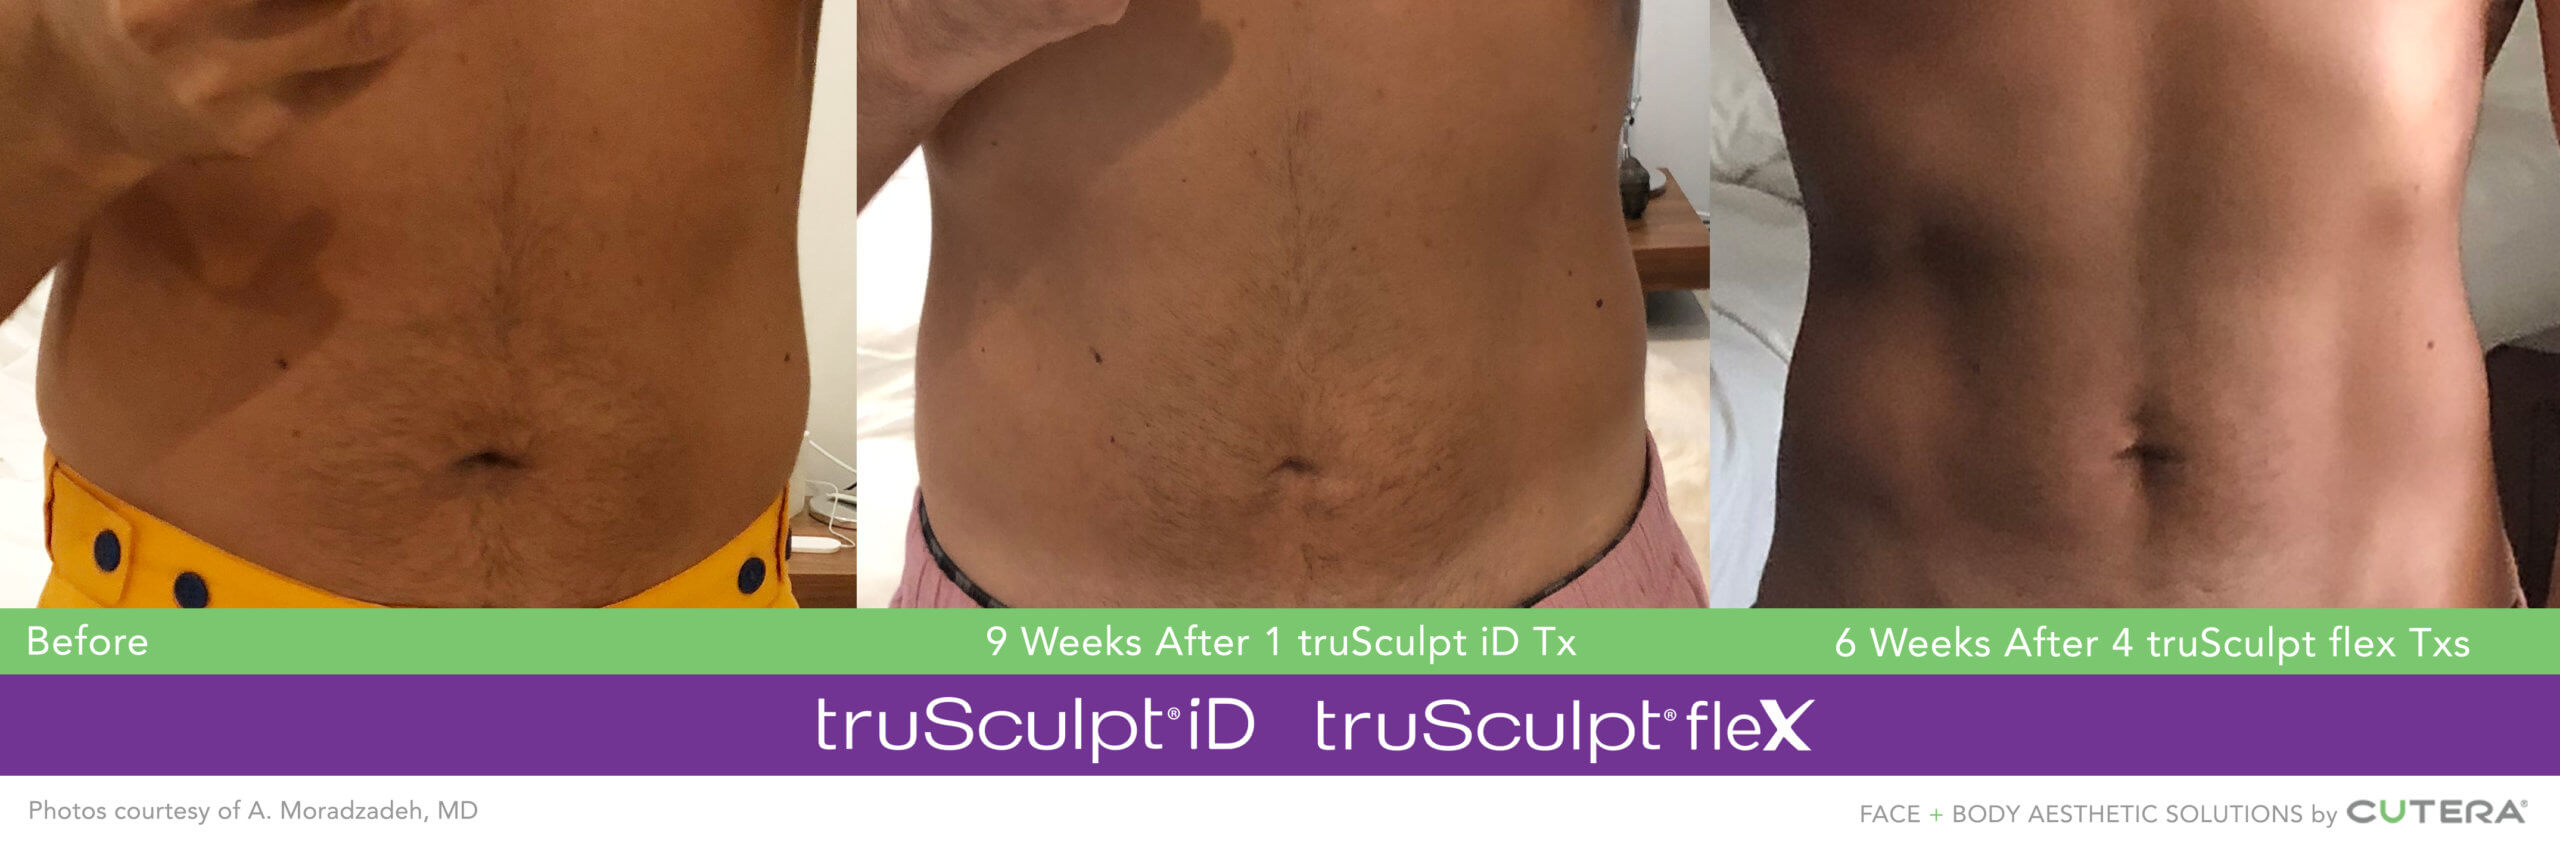 Muscle Sculpting and Body Sculpting on the Abdomen and Obliques/Flanks Before and After image after 12 weeks